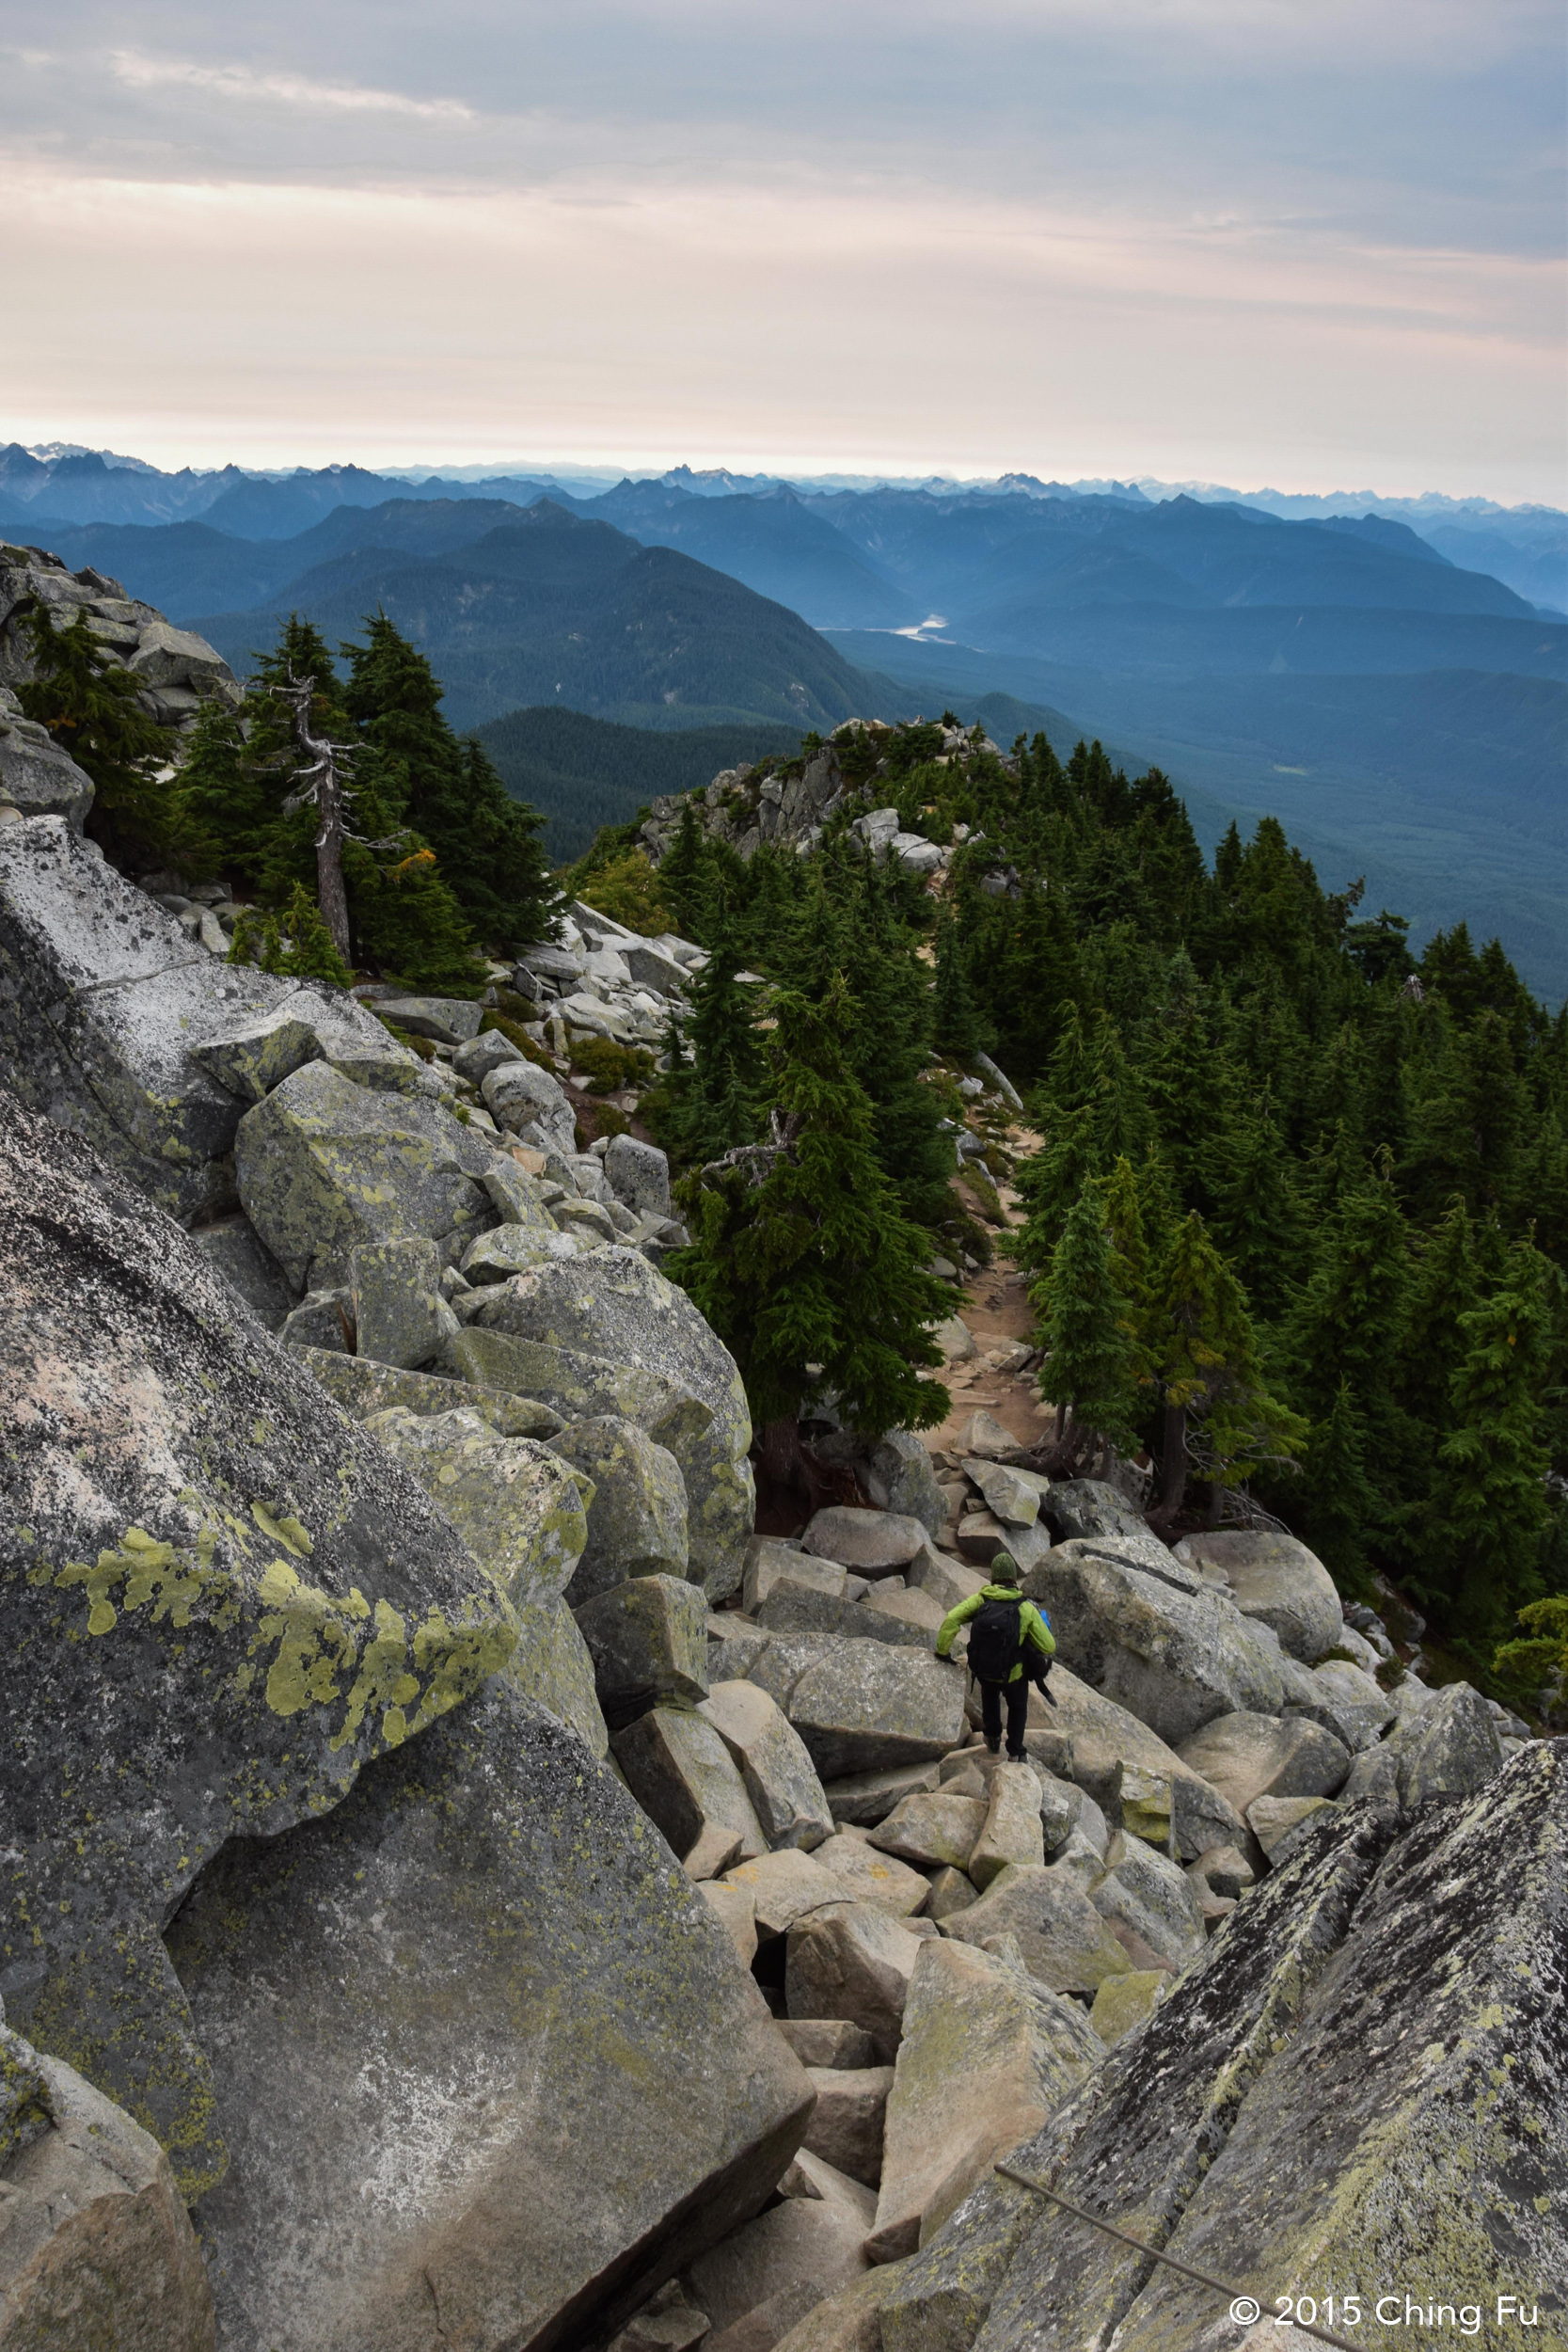 Lots of boulders to hop across at the base of the fire lookout.